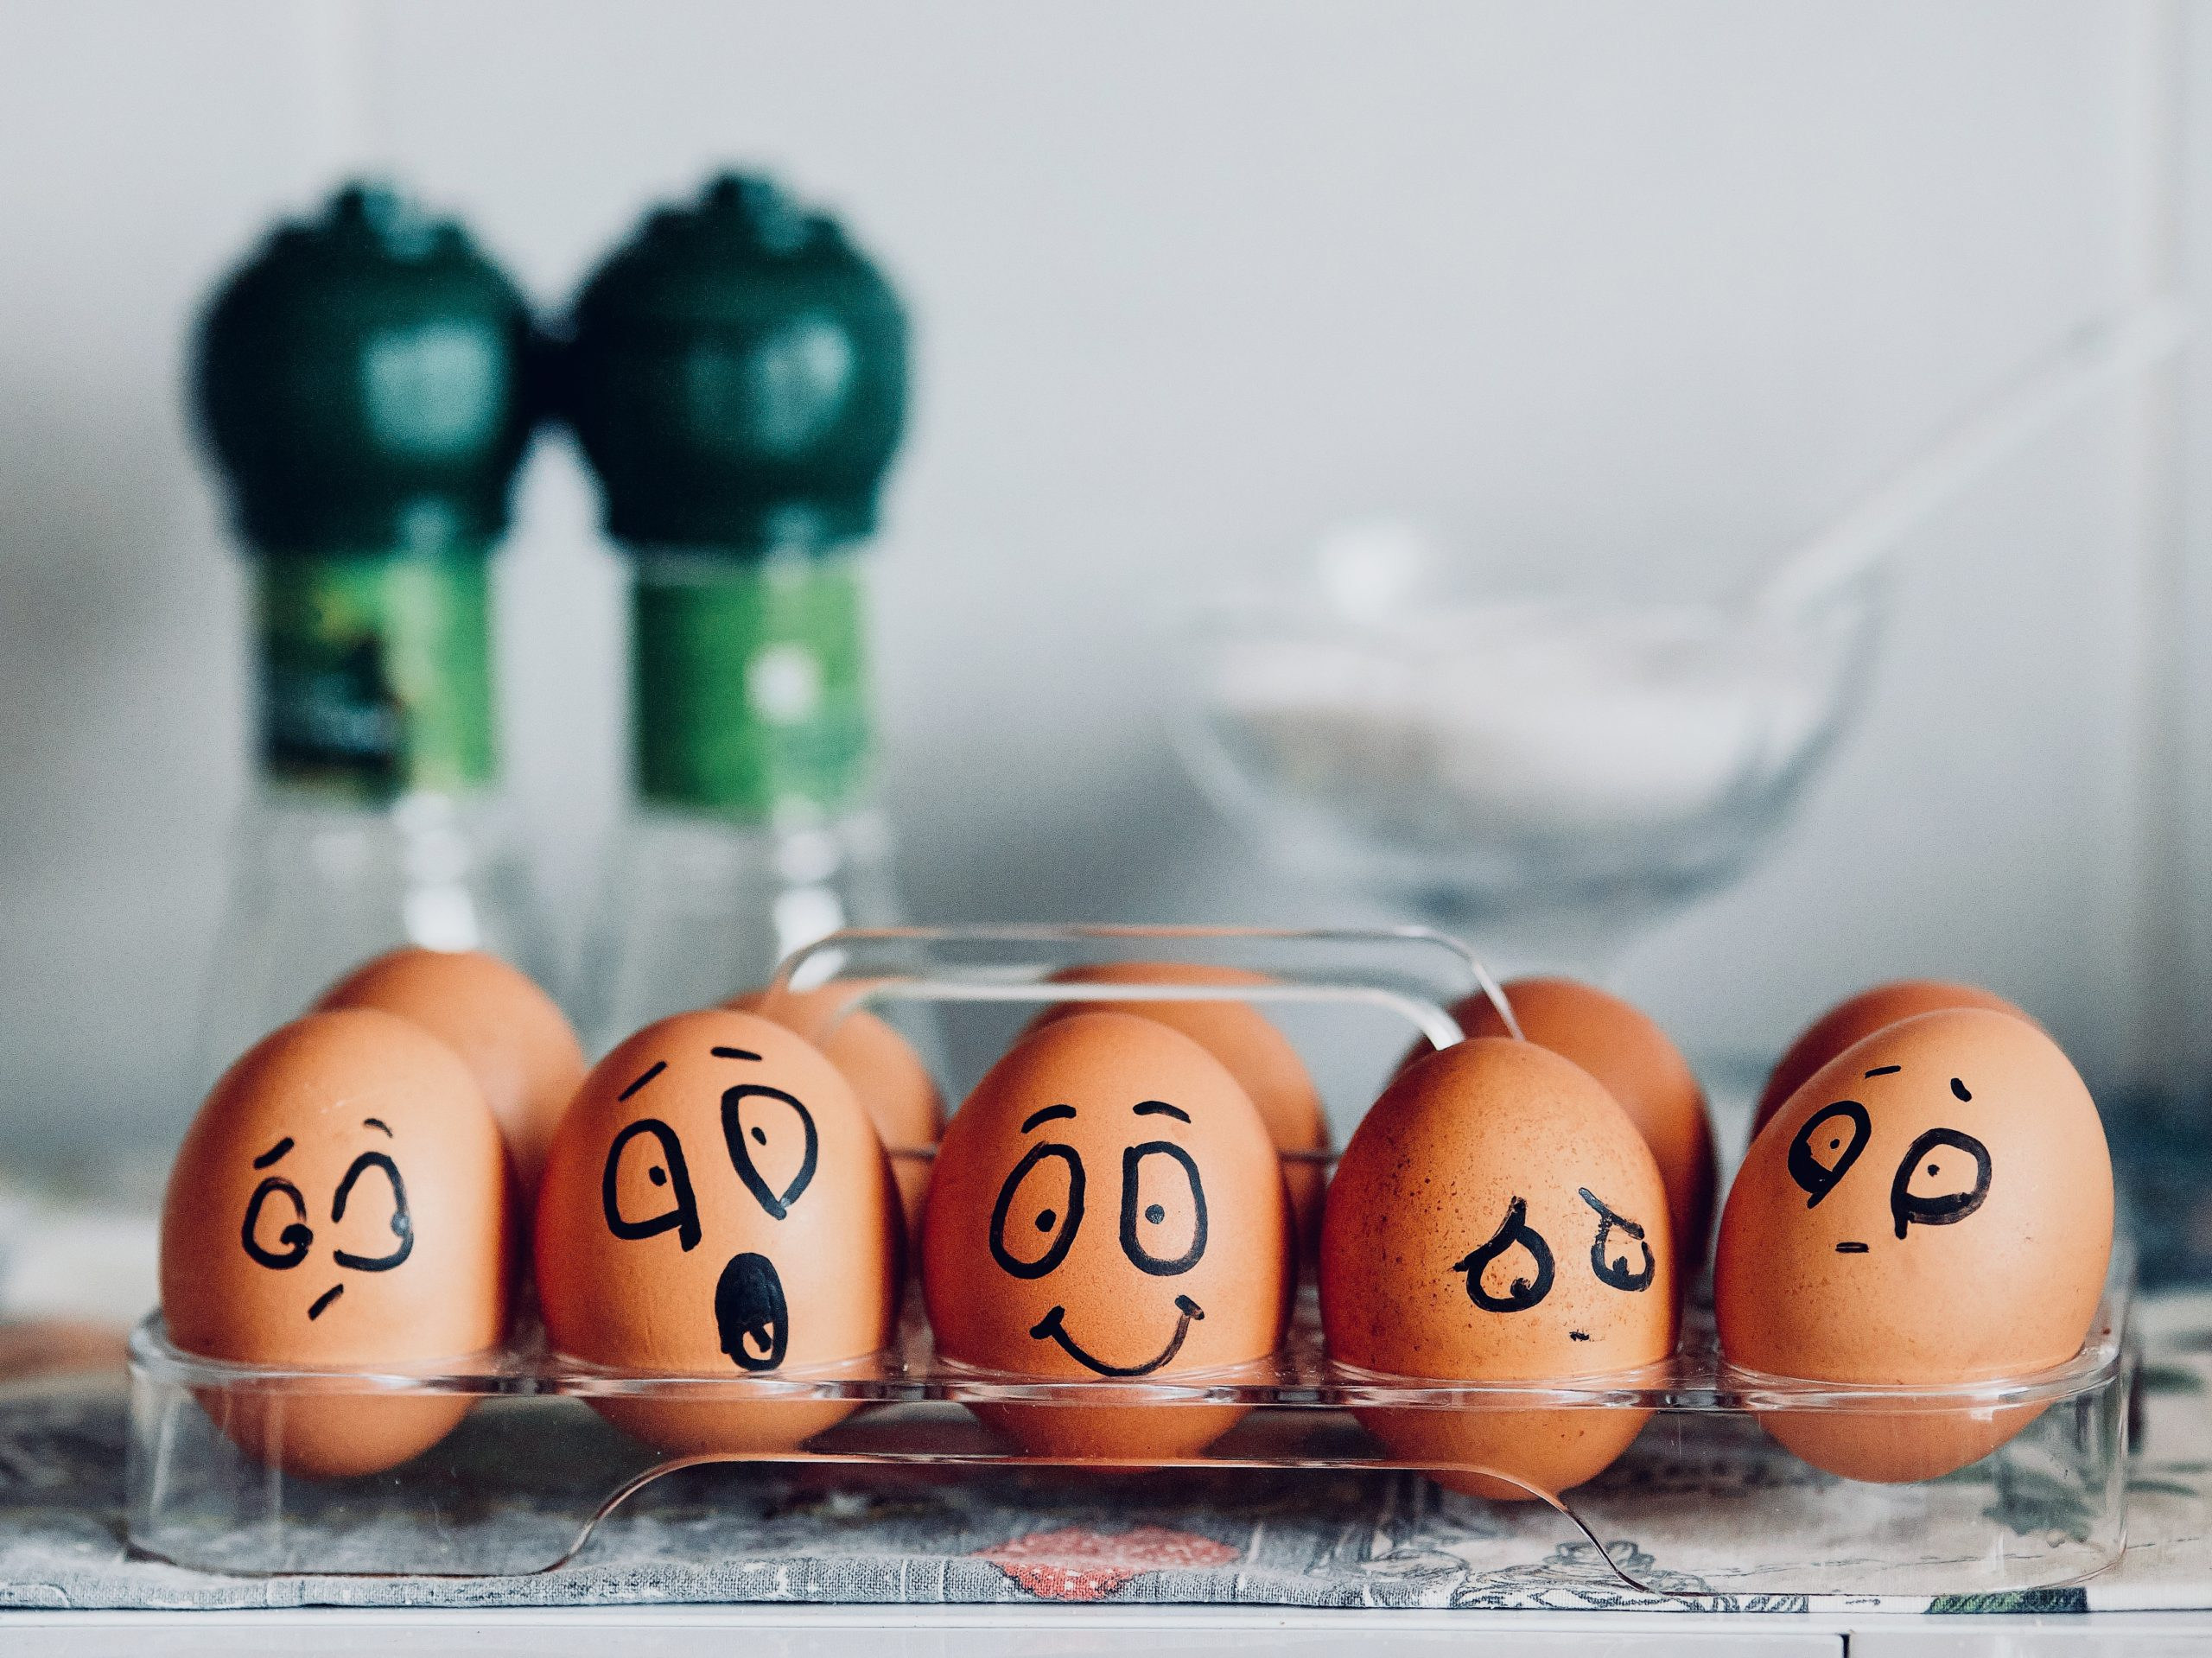 Eggs with different facial expressions